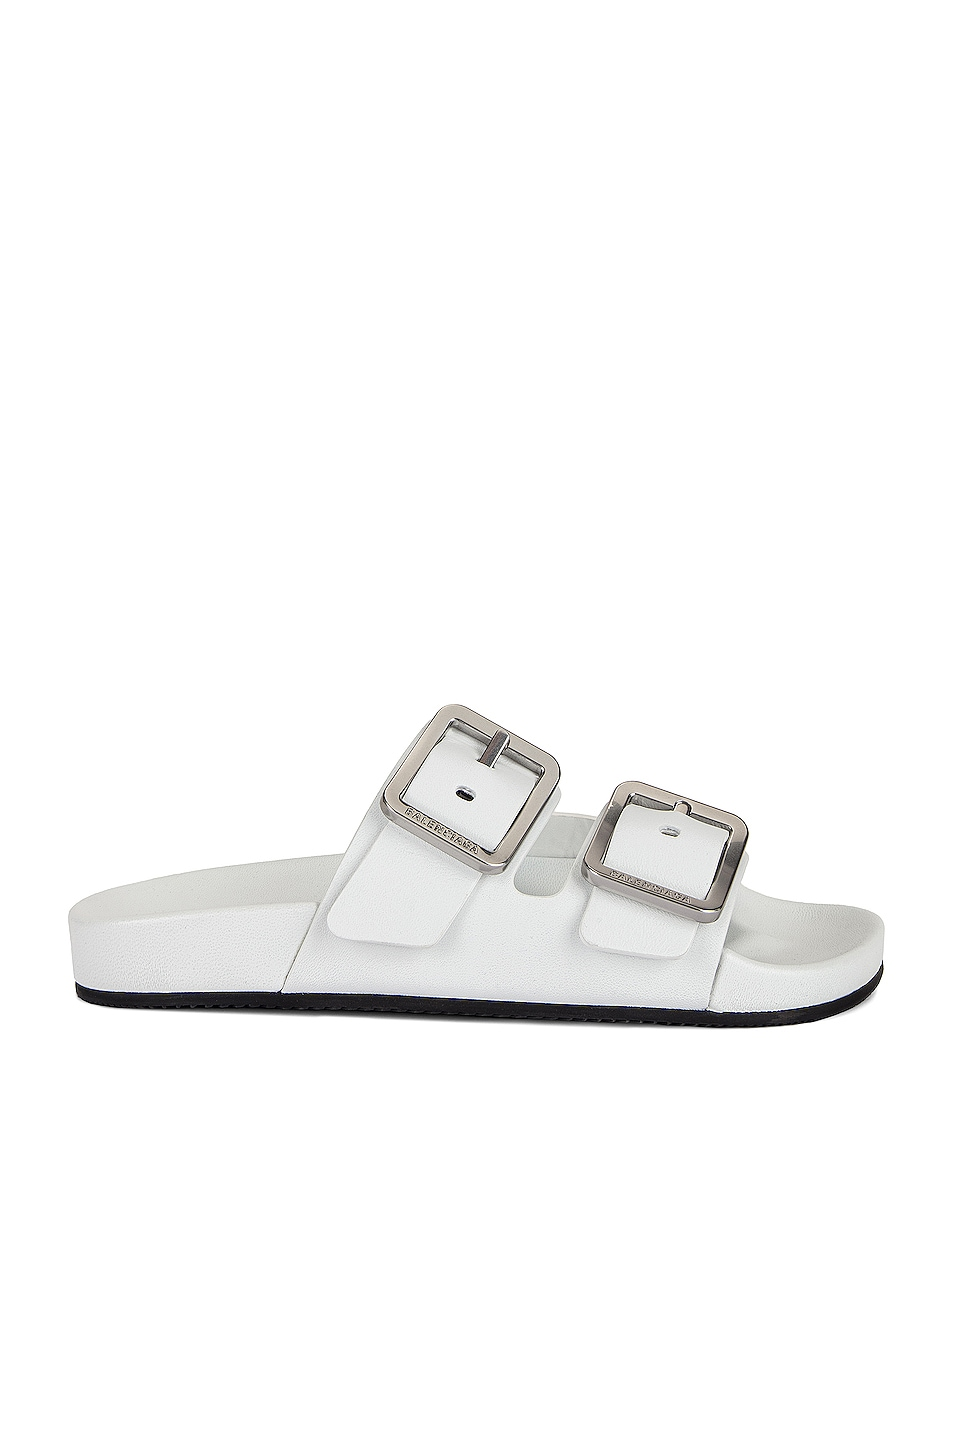 Image 1 of Balenciaga Mallorca Sandals in White